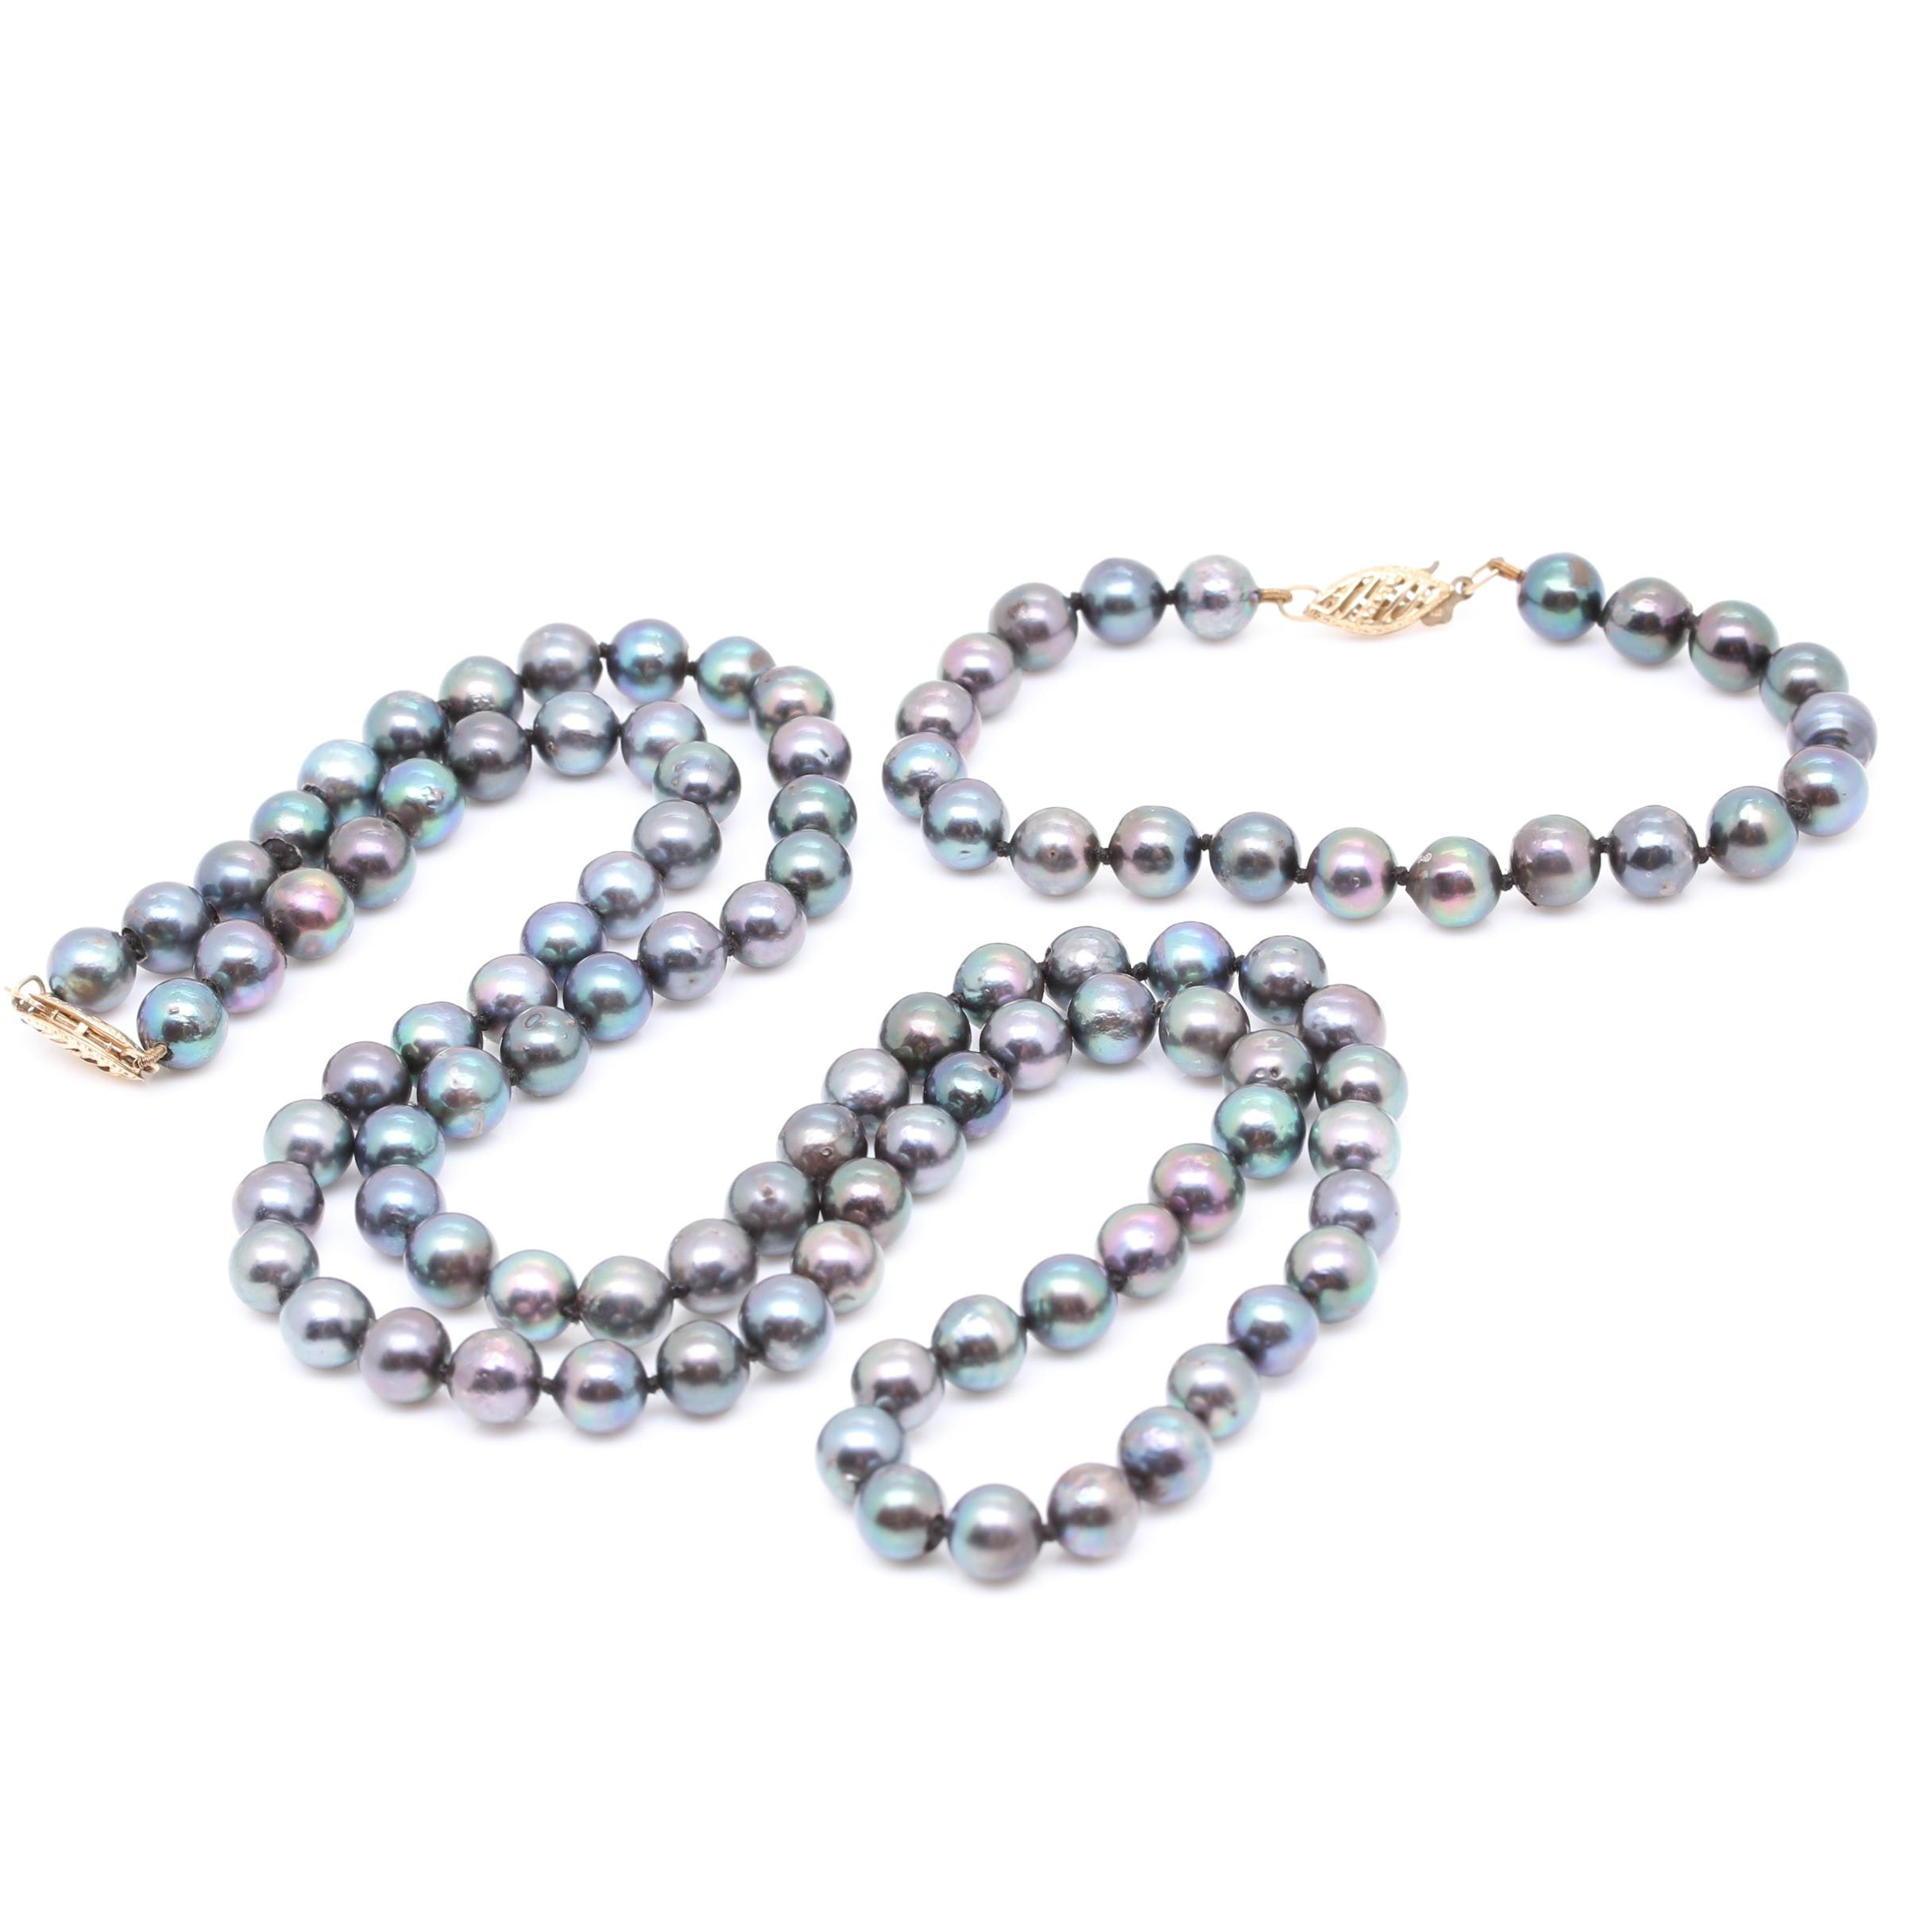 9K Yellow Gold Cultured Pearl Necklace and Bracelet Set